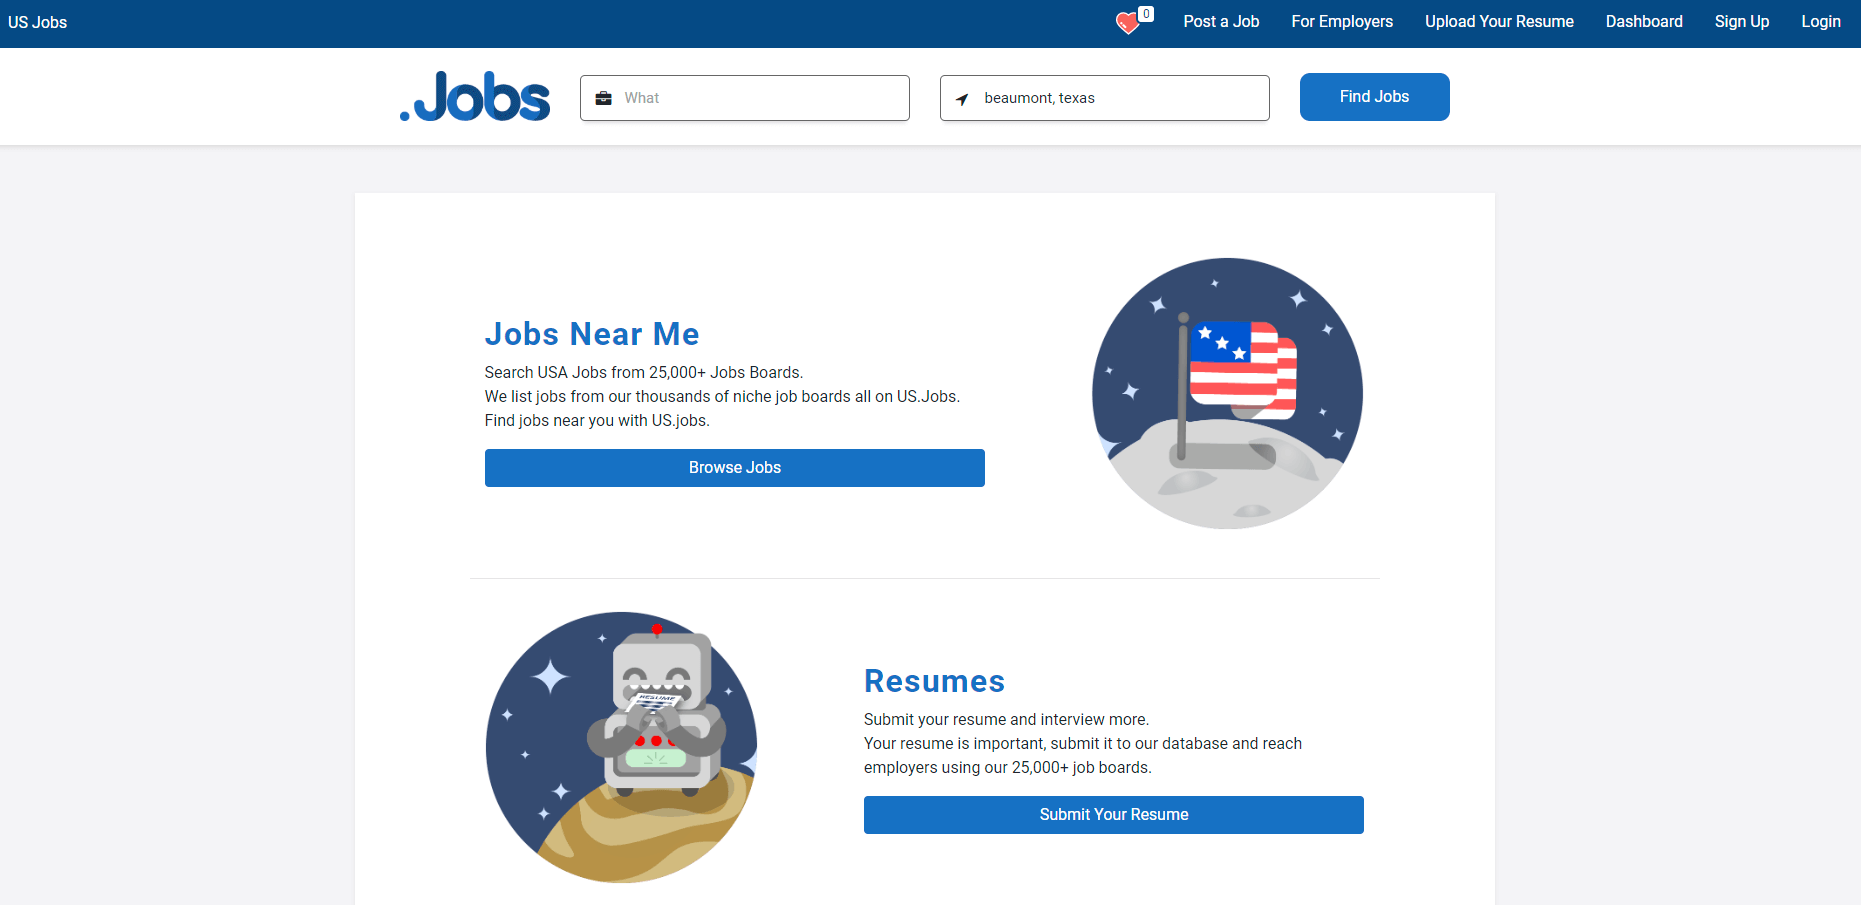 Click to go to US.jobs